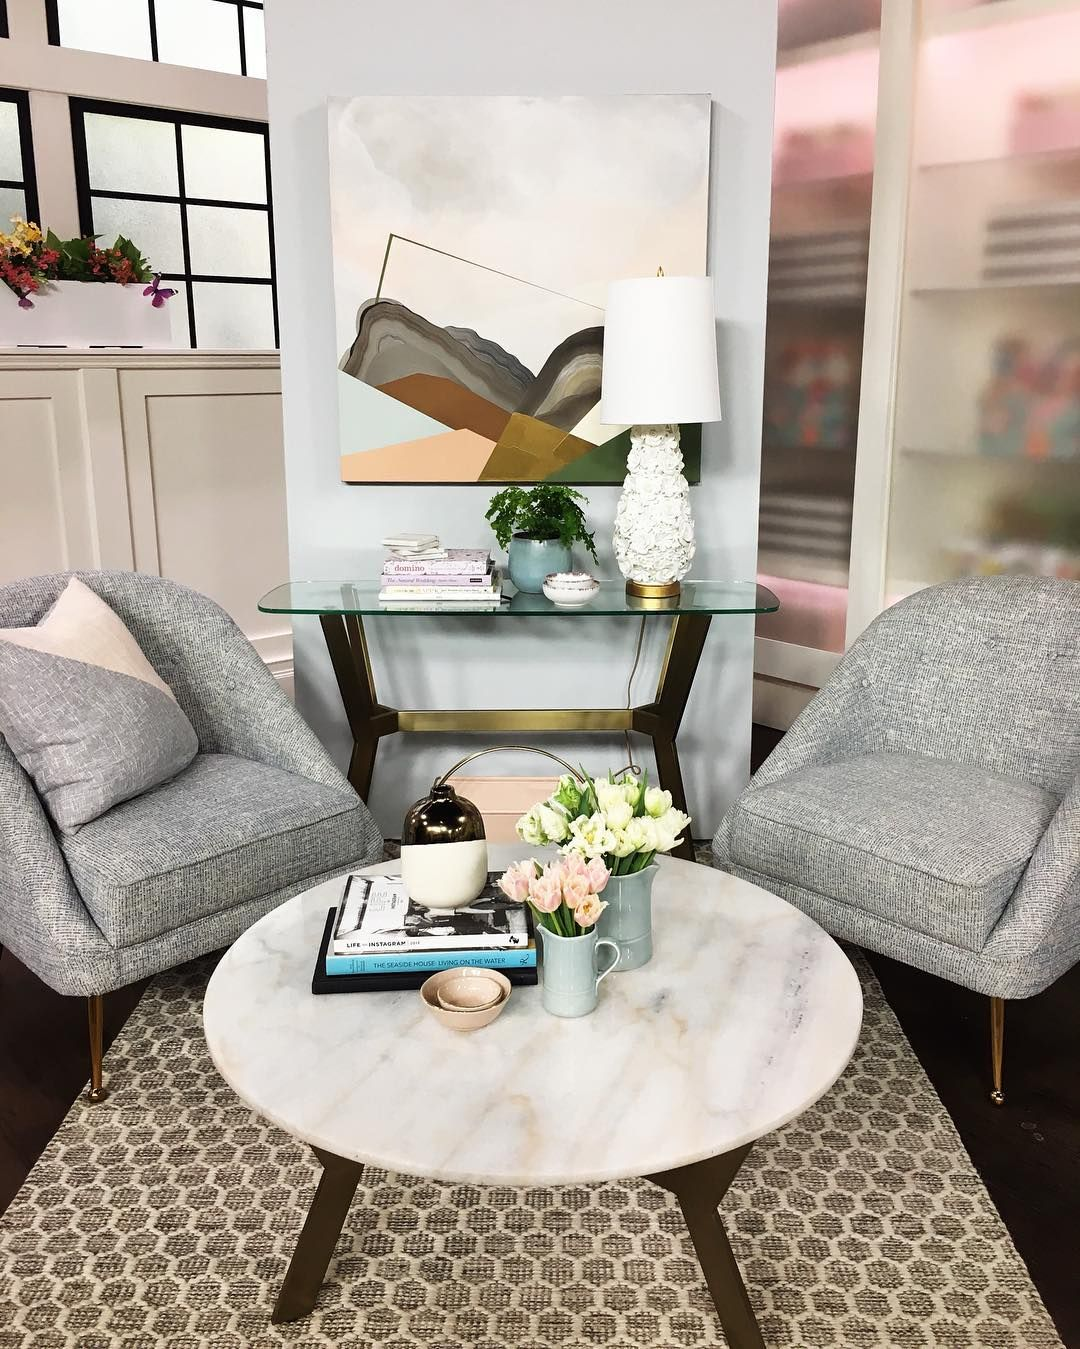 Samantha Pynn On Instagram Had So Much Fun On The Themarilyndenisshow Today Swipe To See More Spring Decor Living Room Art Affordable Artwork Interior Art